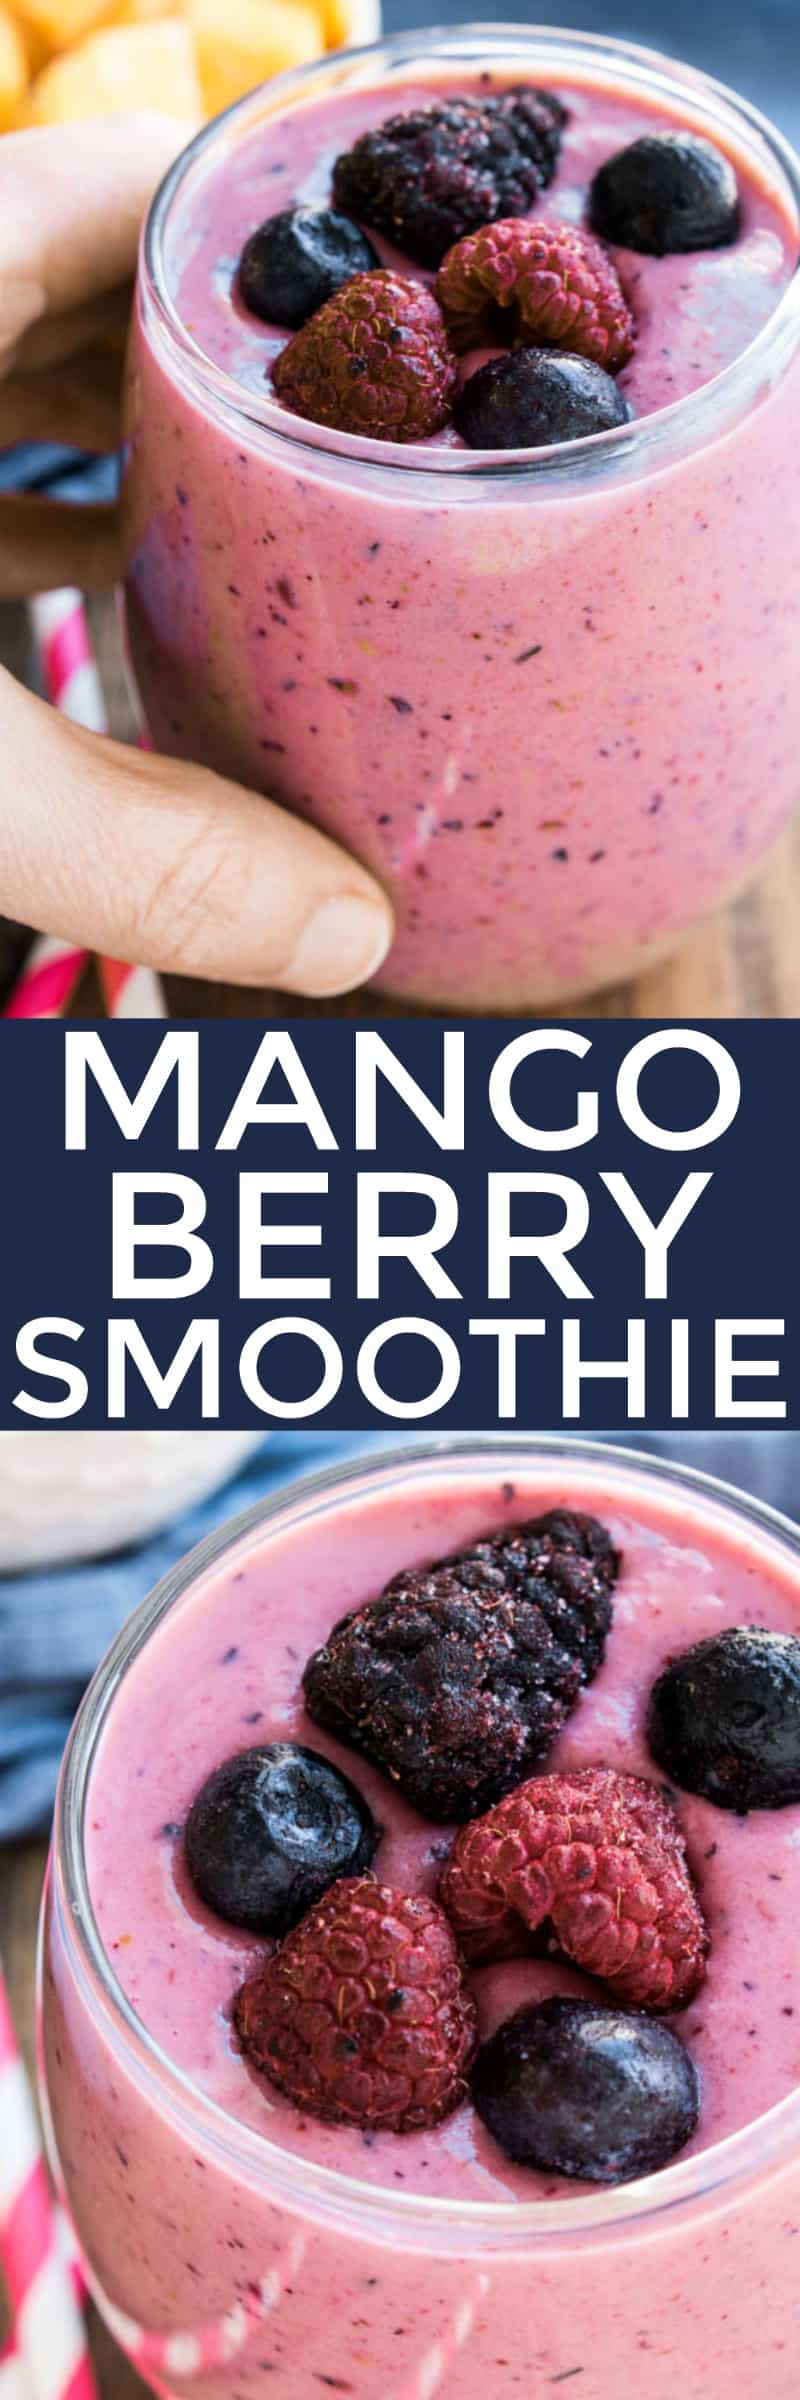 titled photo collage - Mango-Berry Smoothie